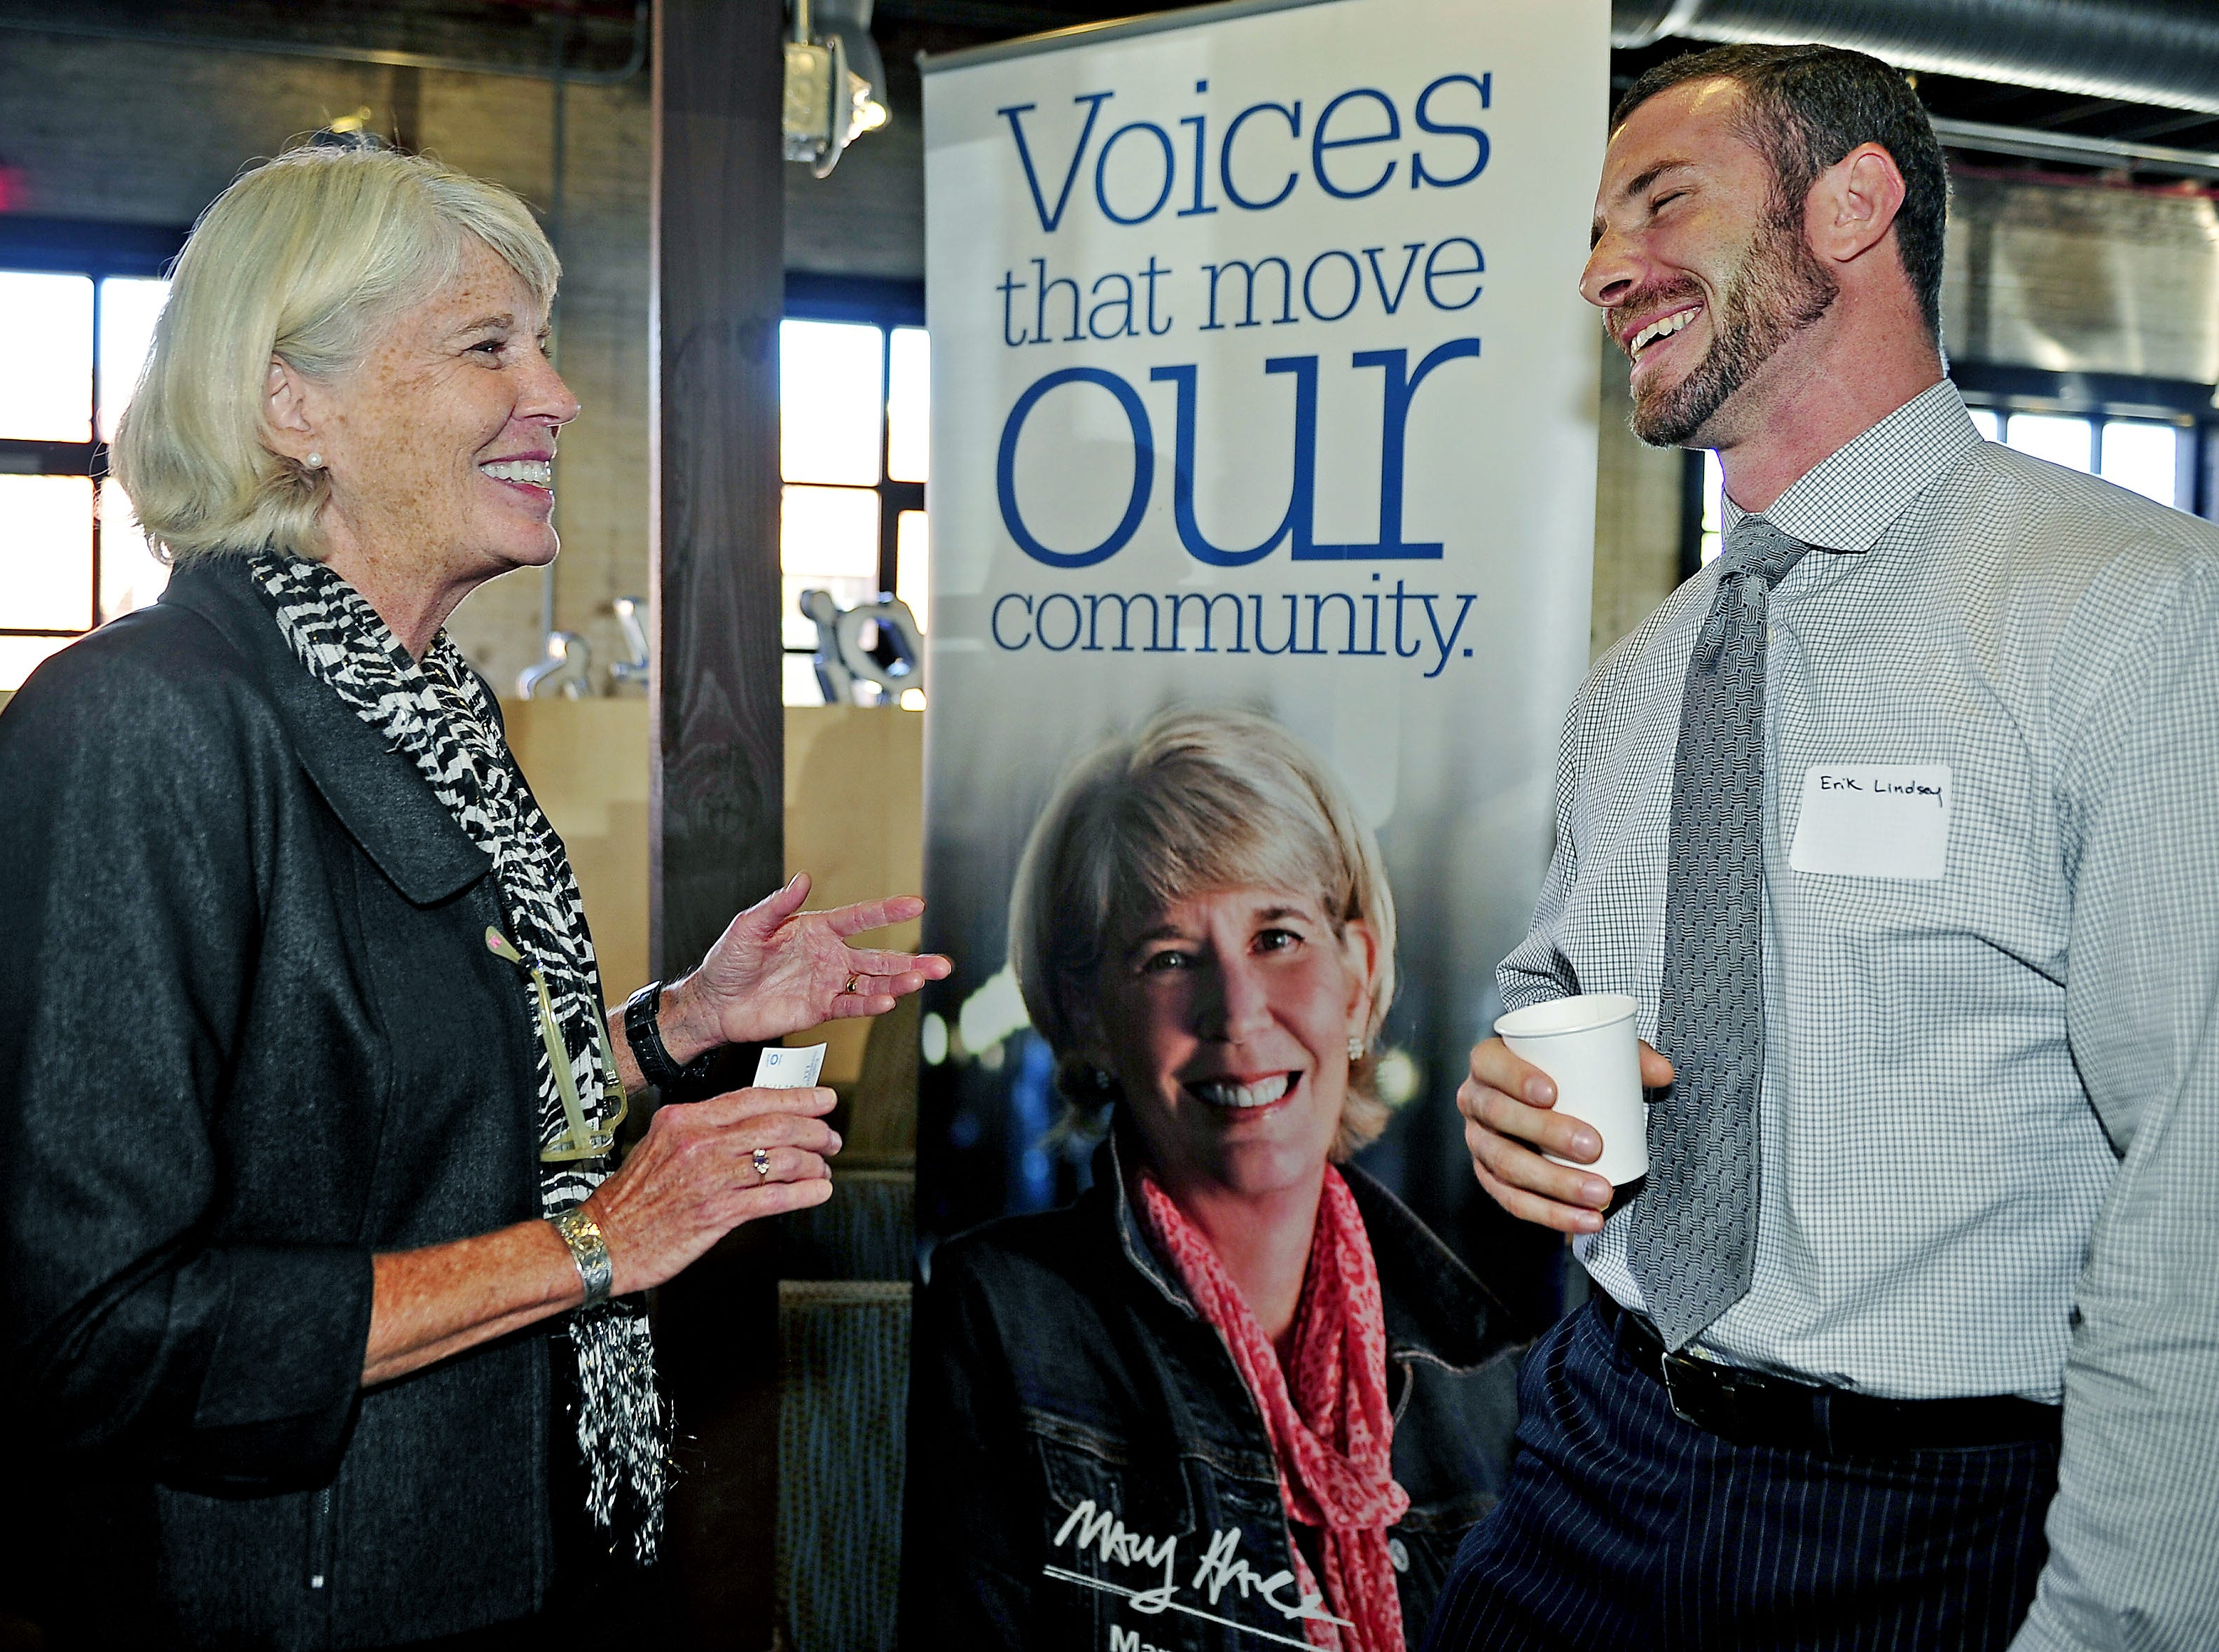 Mary Hance, better known as Ms. Cheap of The Tennessean, left, talks with Erik Lindsey during the Meet The Tennessean event at Emma's Bistro in Nashville on Oct. 13, 2015.